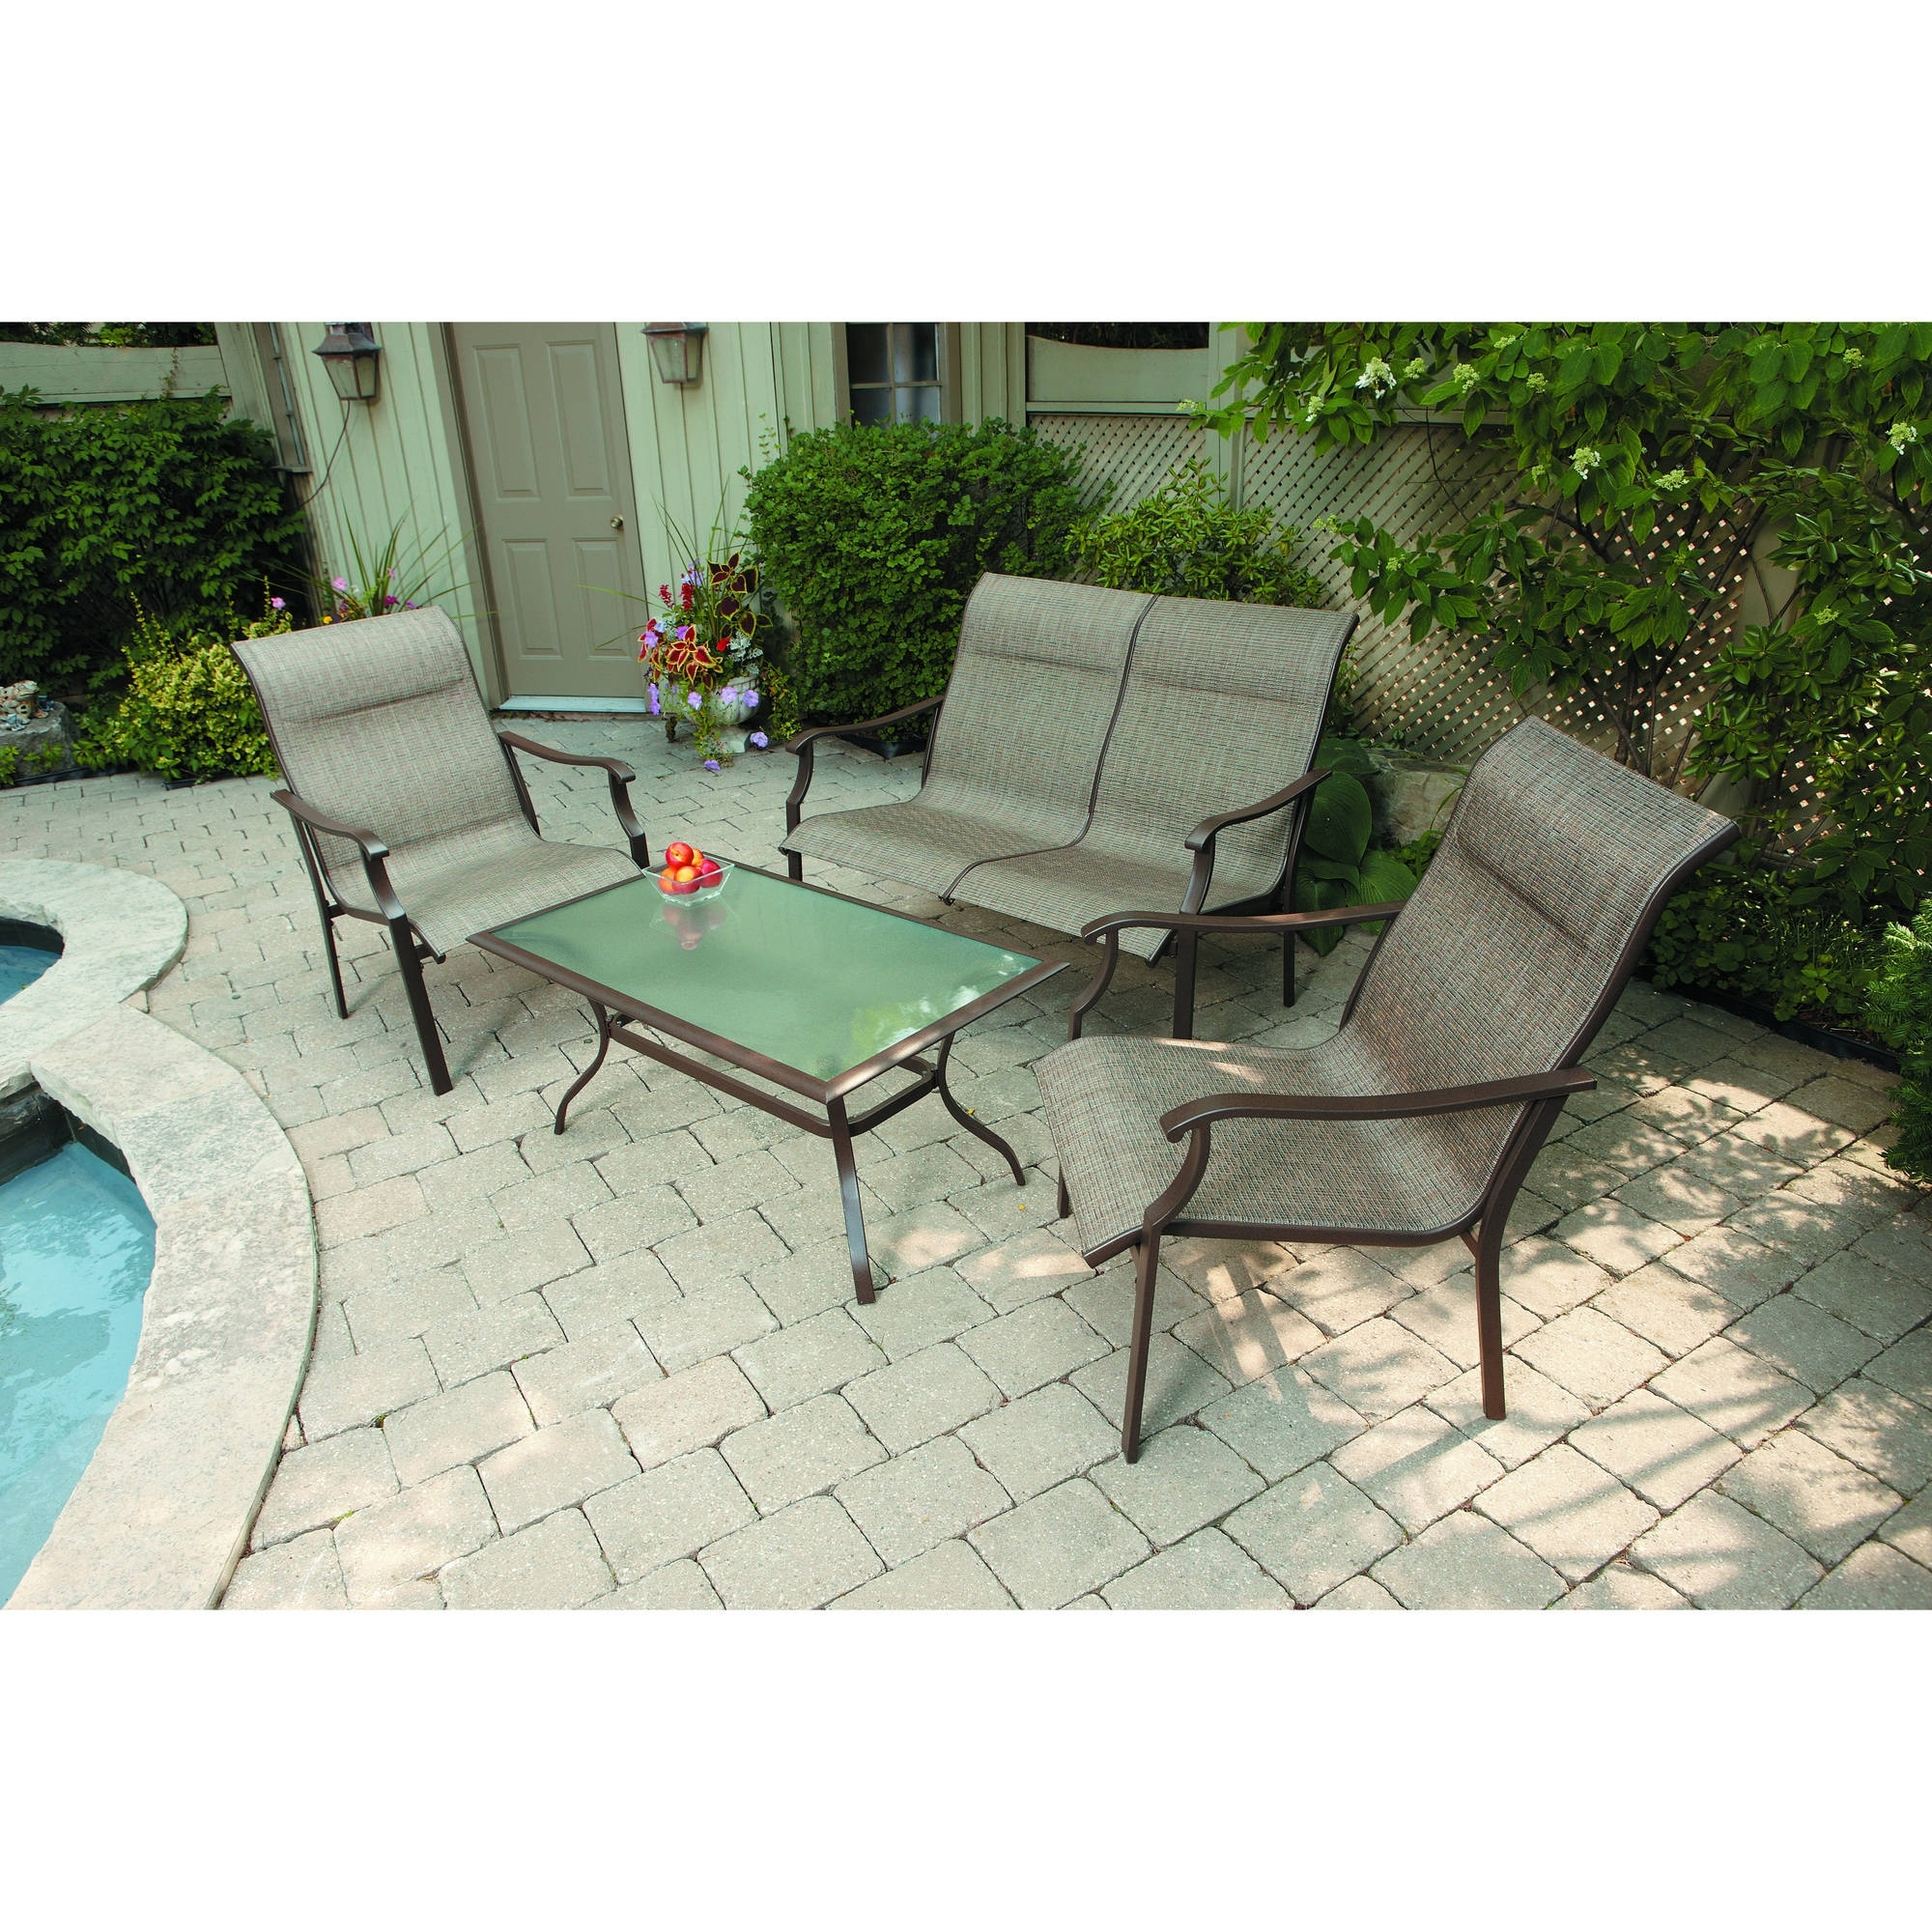 Mainstays York 4Pc Sling Sofa Set – Walmart Throughout Most Recent Sling Patio Conversation Sets (View 5 of 20)